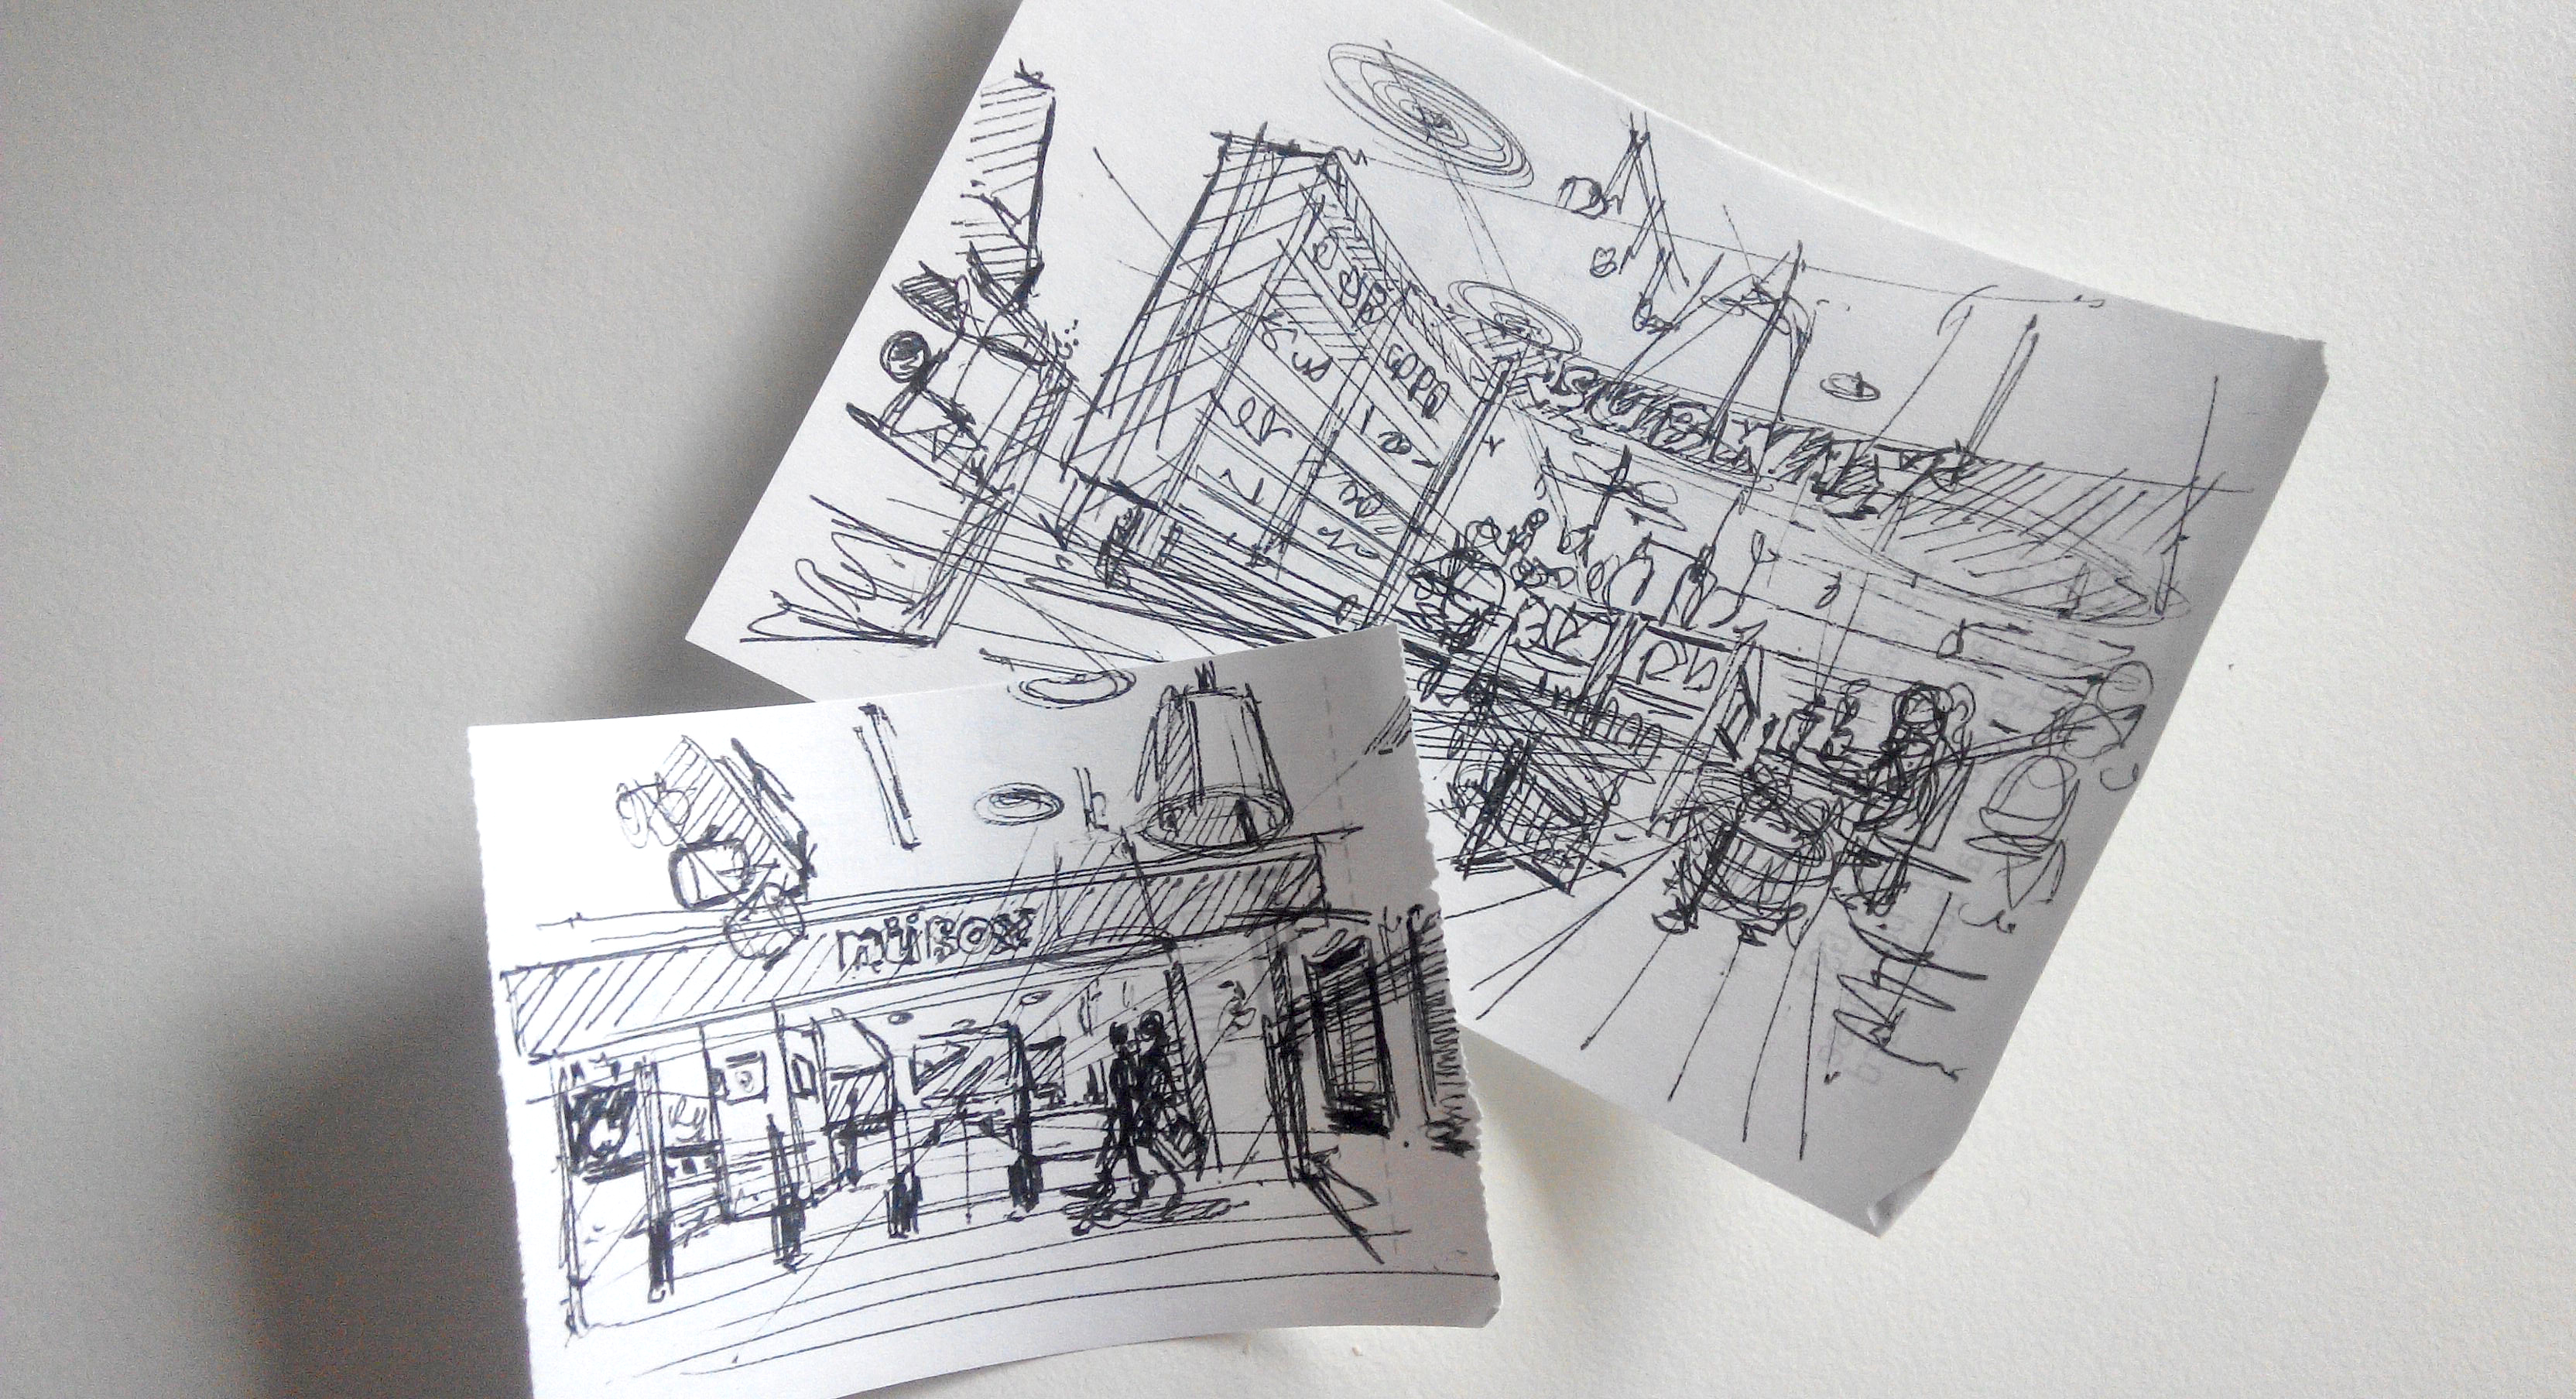 Receipt sketch in a cafe at starbuck - the design sketchbook